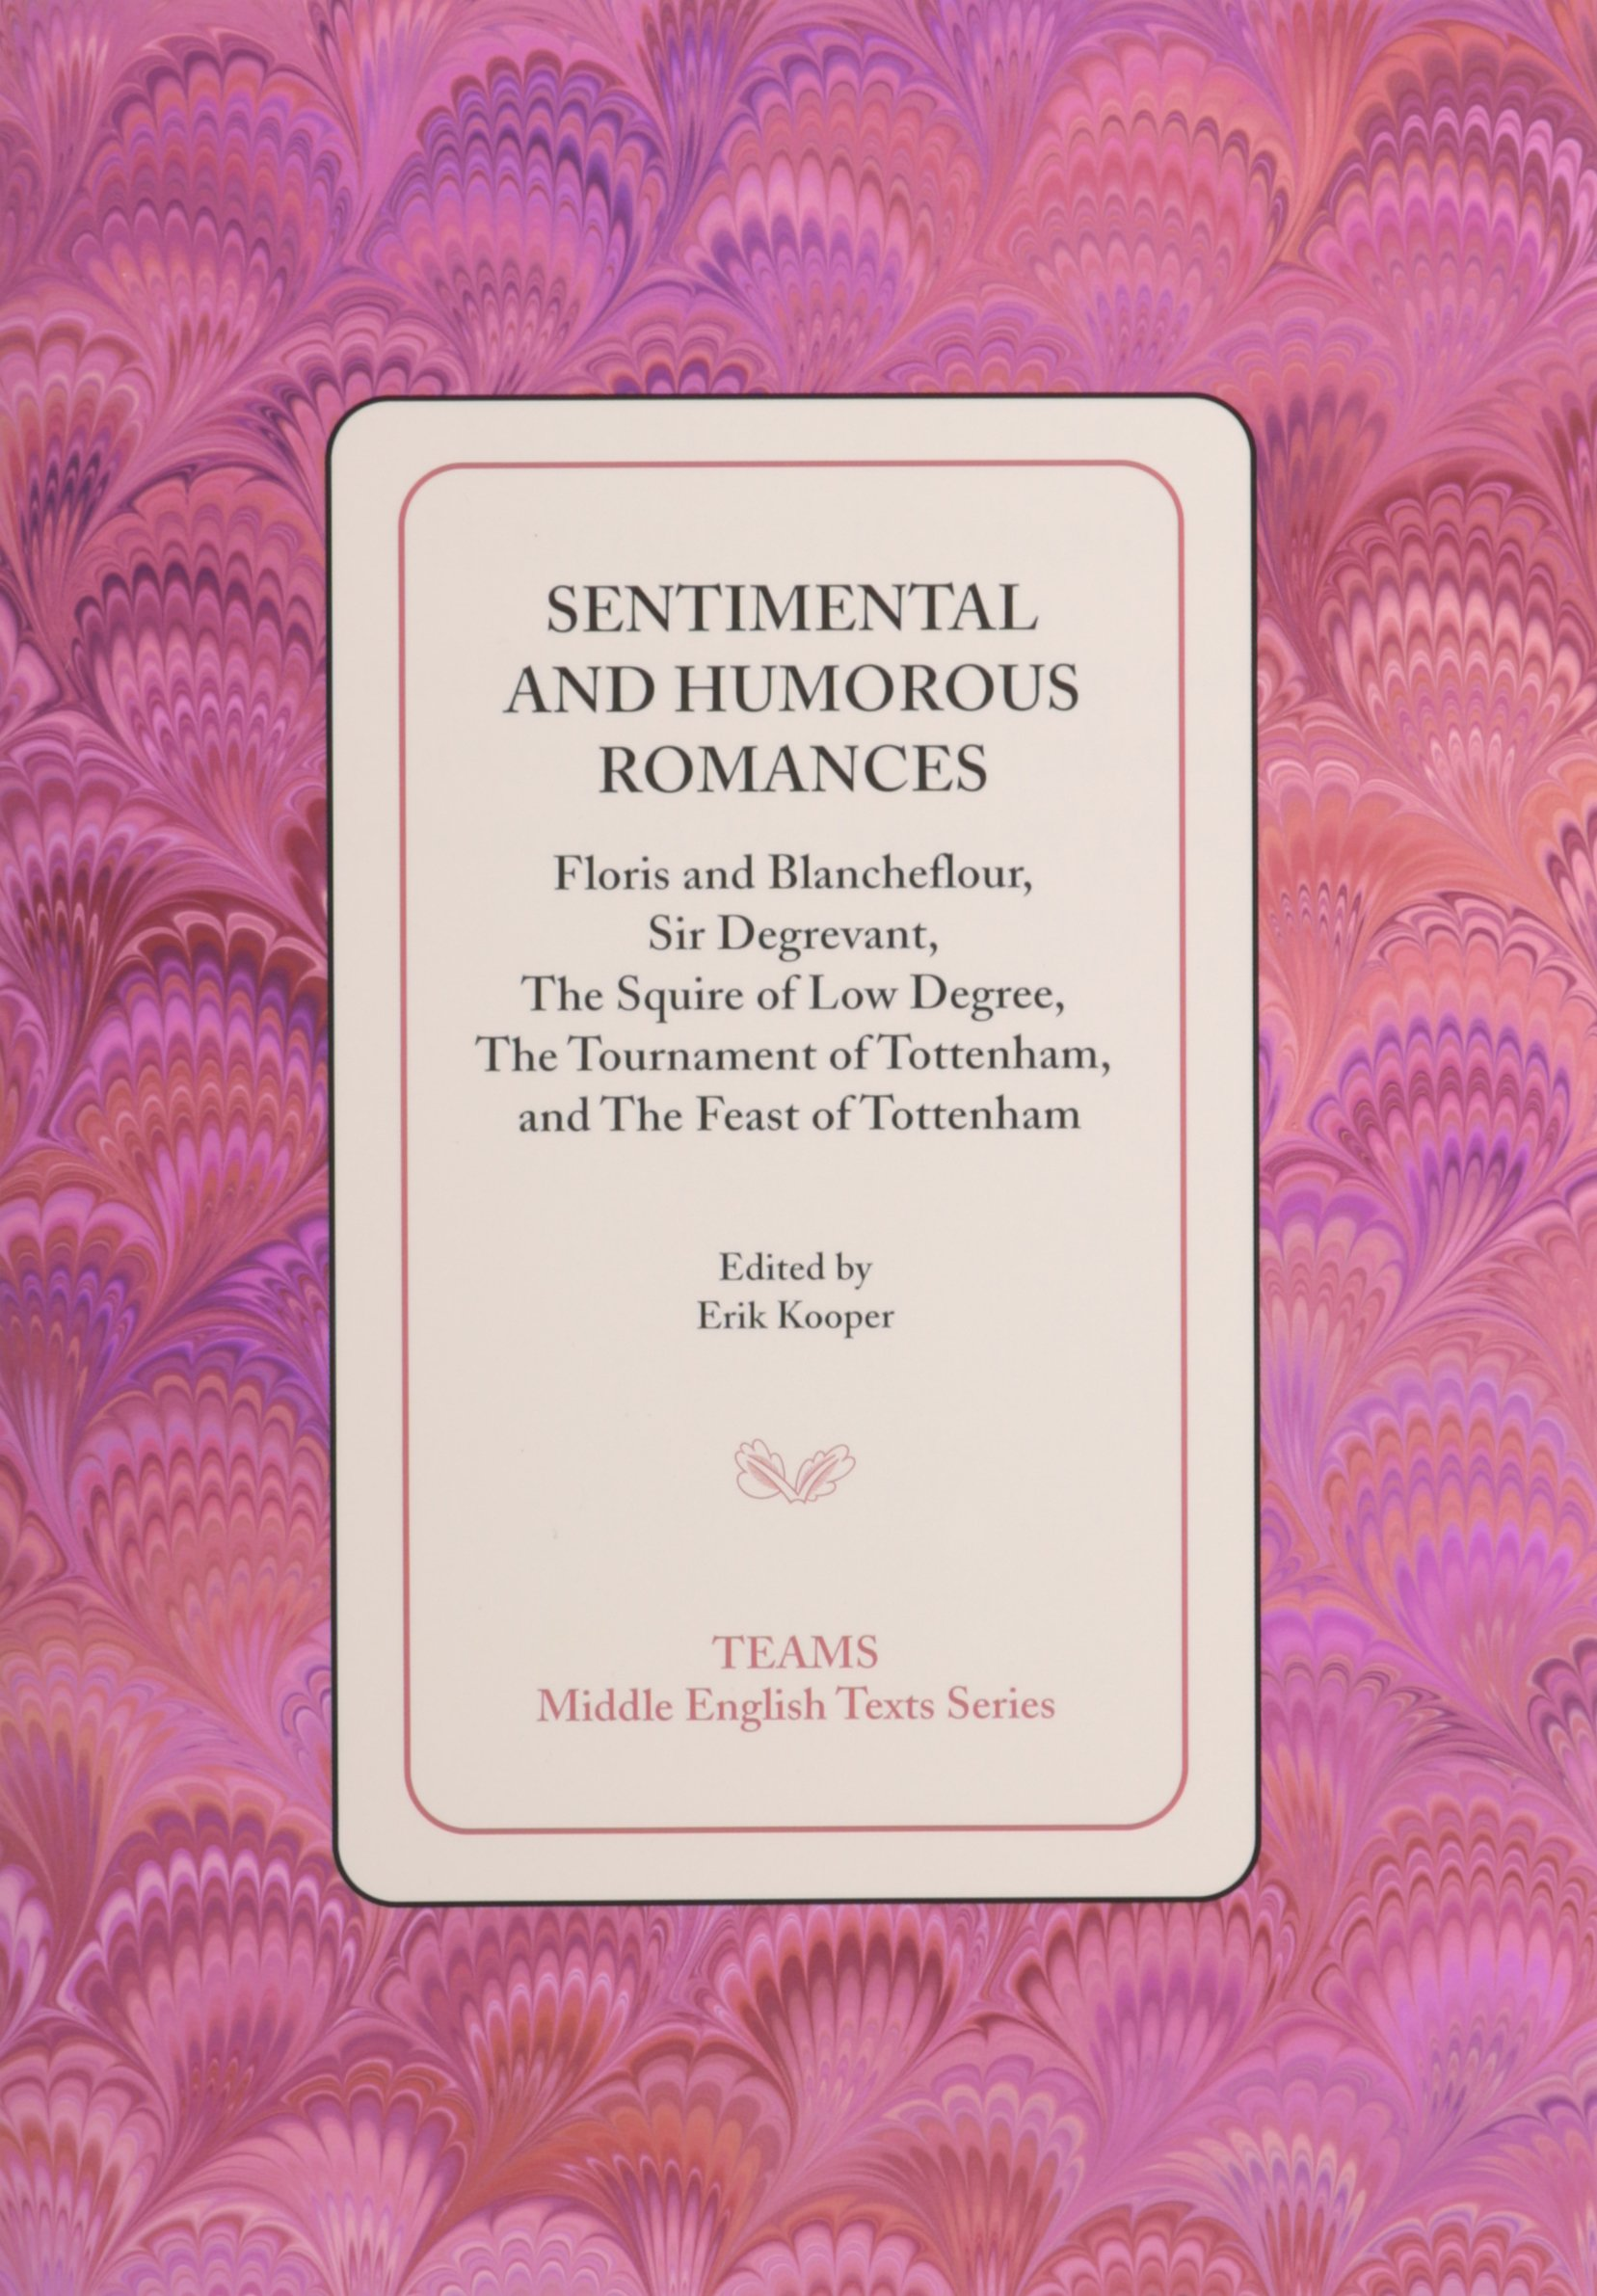 Sentimental and Humorous Romances: Floris and Blancheflour, Sir Degrevant, The Squire of Low Degree, The Tournament of Tottenham, and The Feast of Tottenham (Middle English Texts)